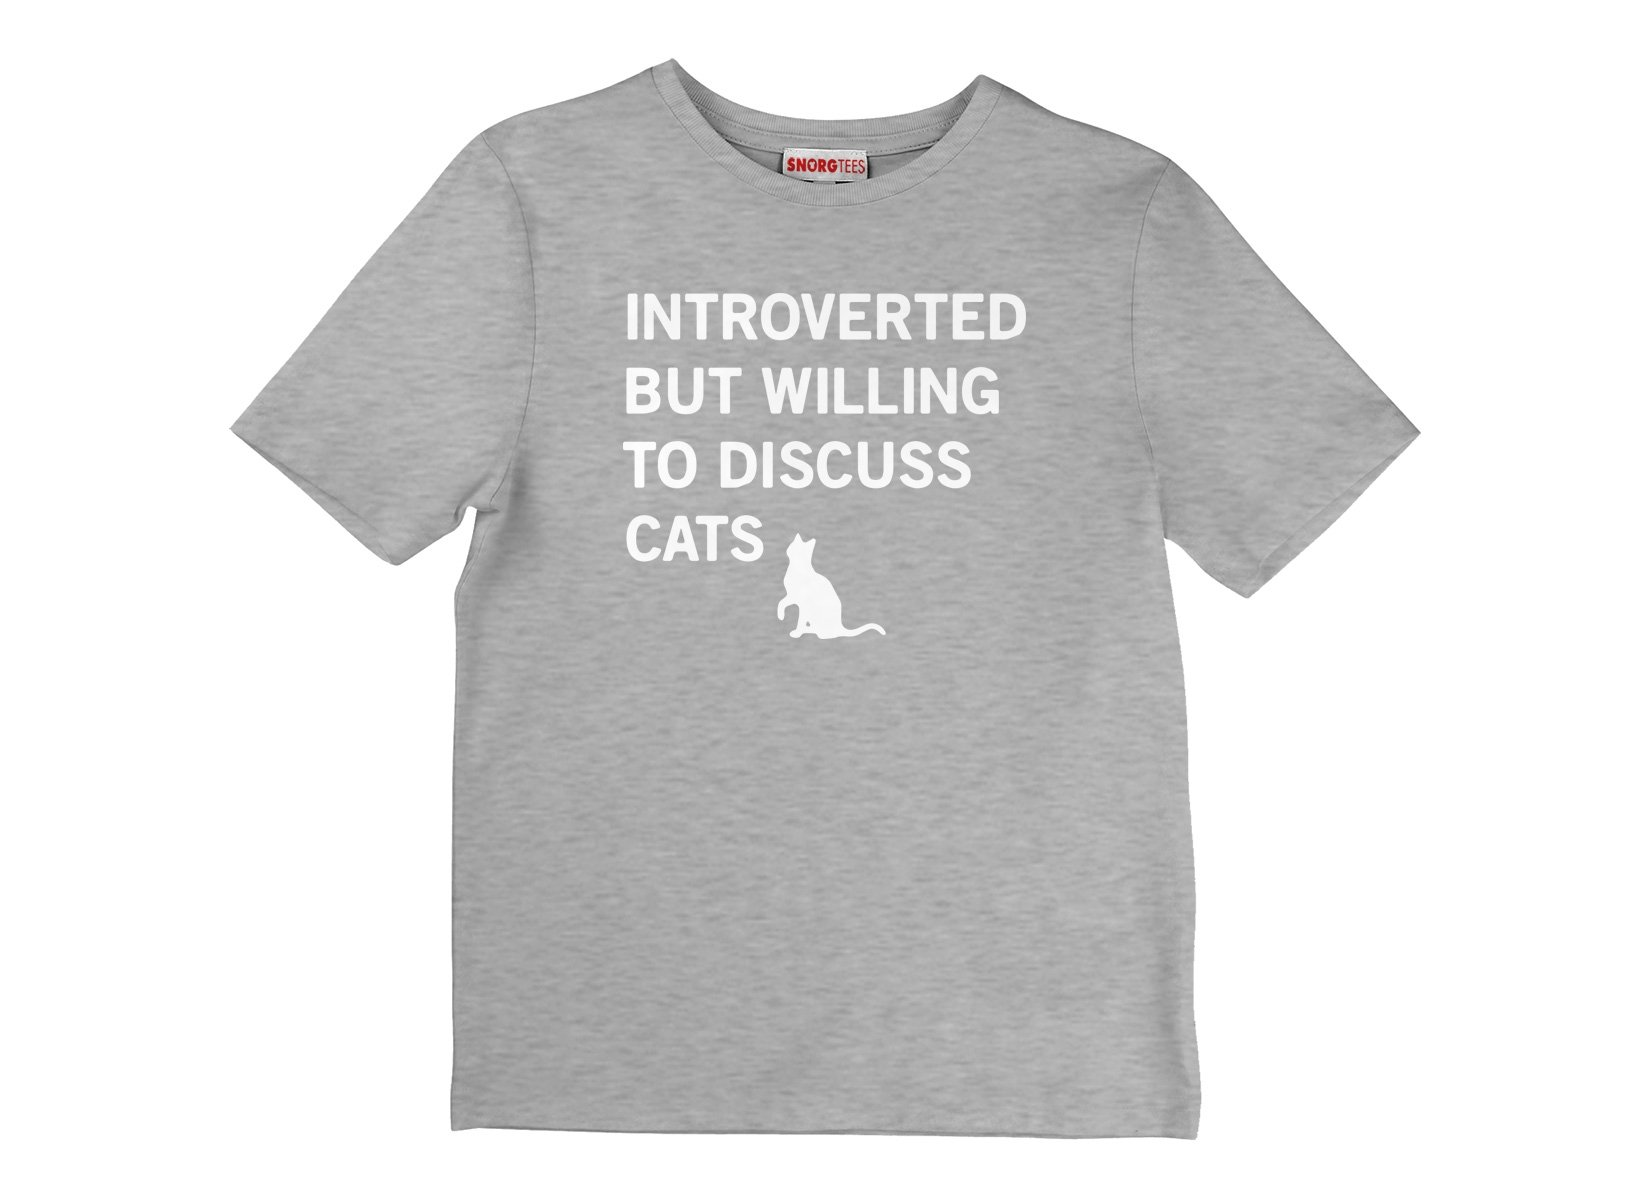 Introverted But Willing To Discuss Cats on Kids T-Shirt